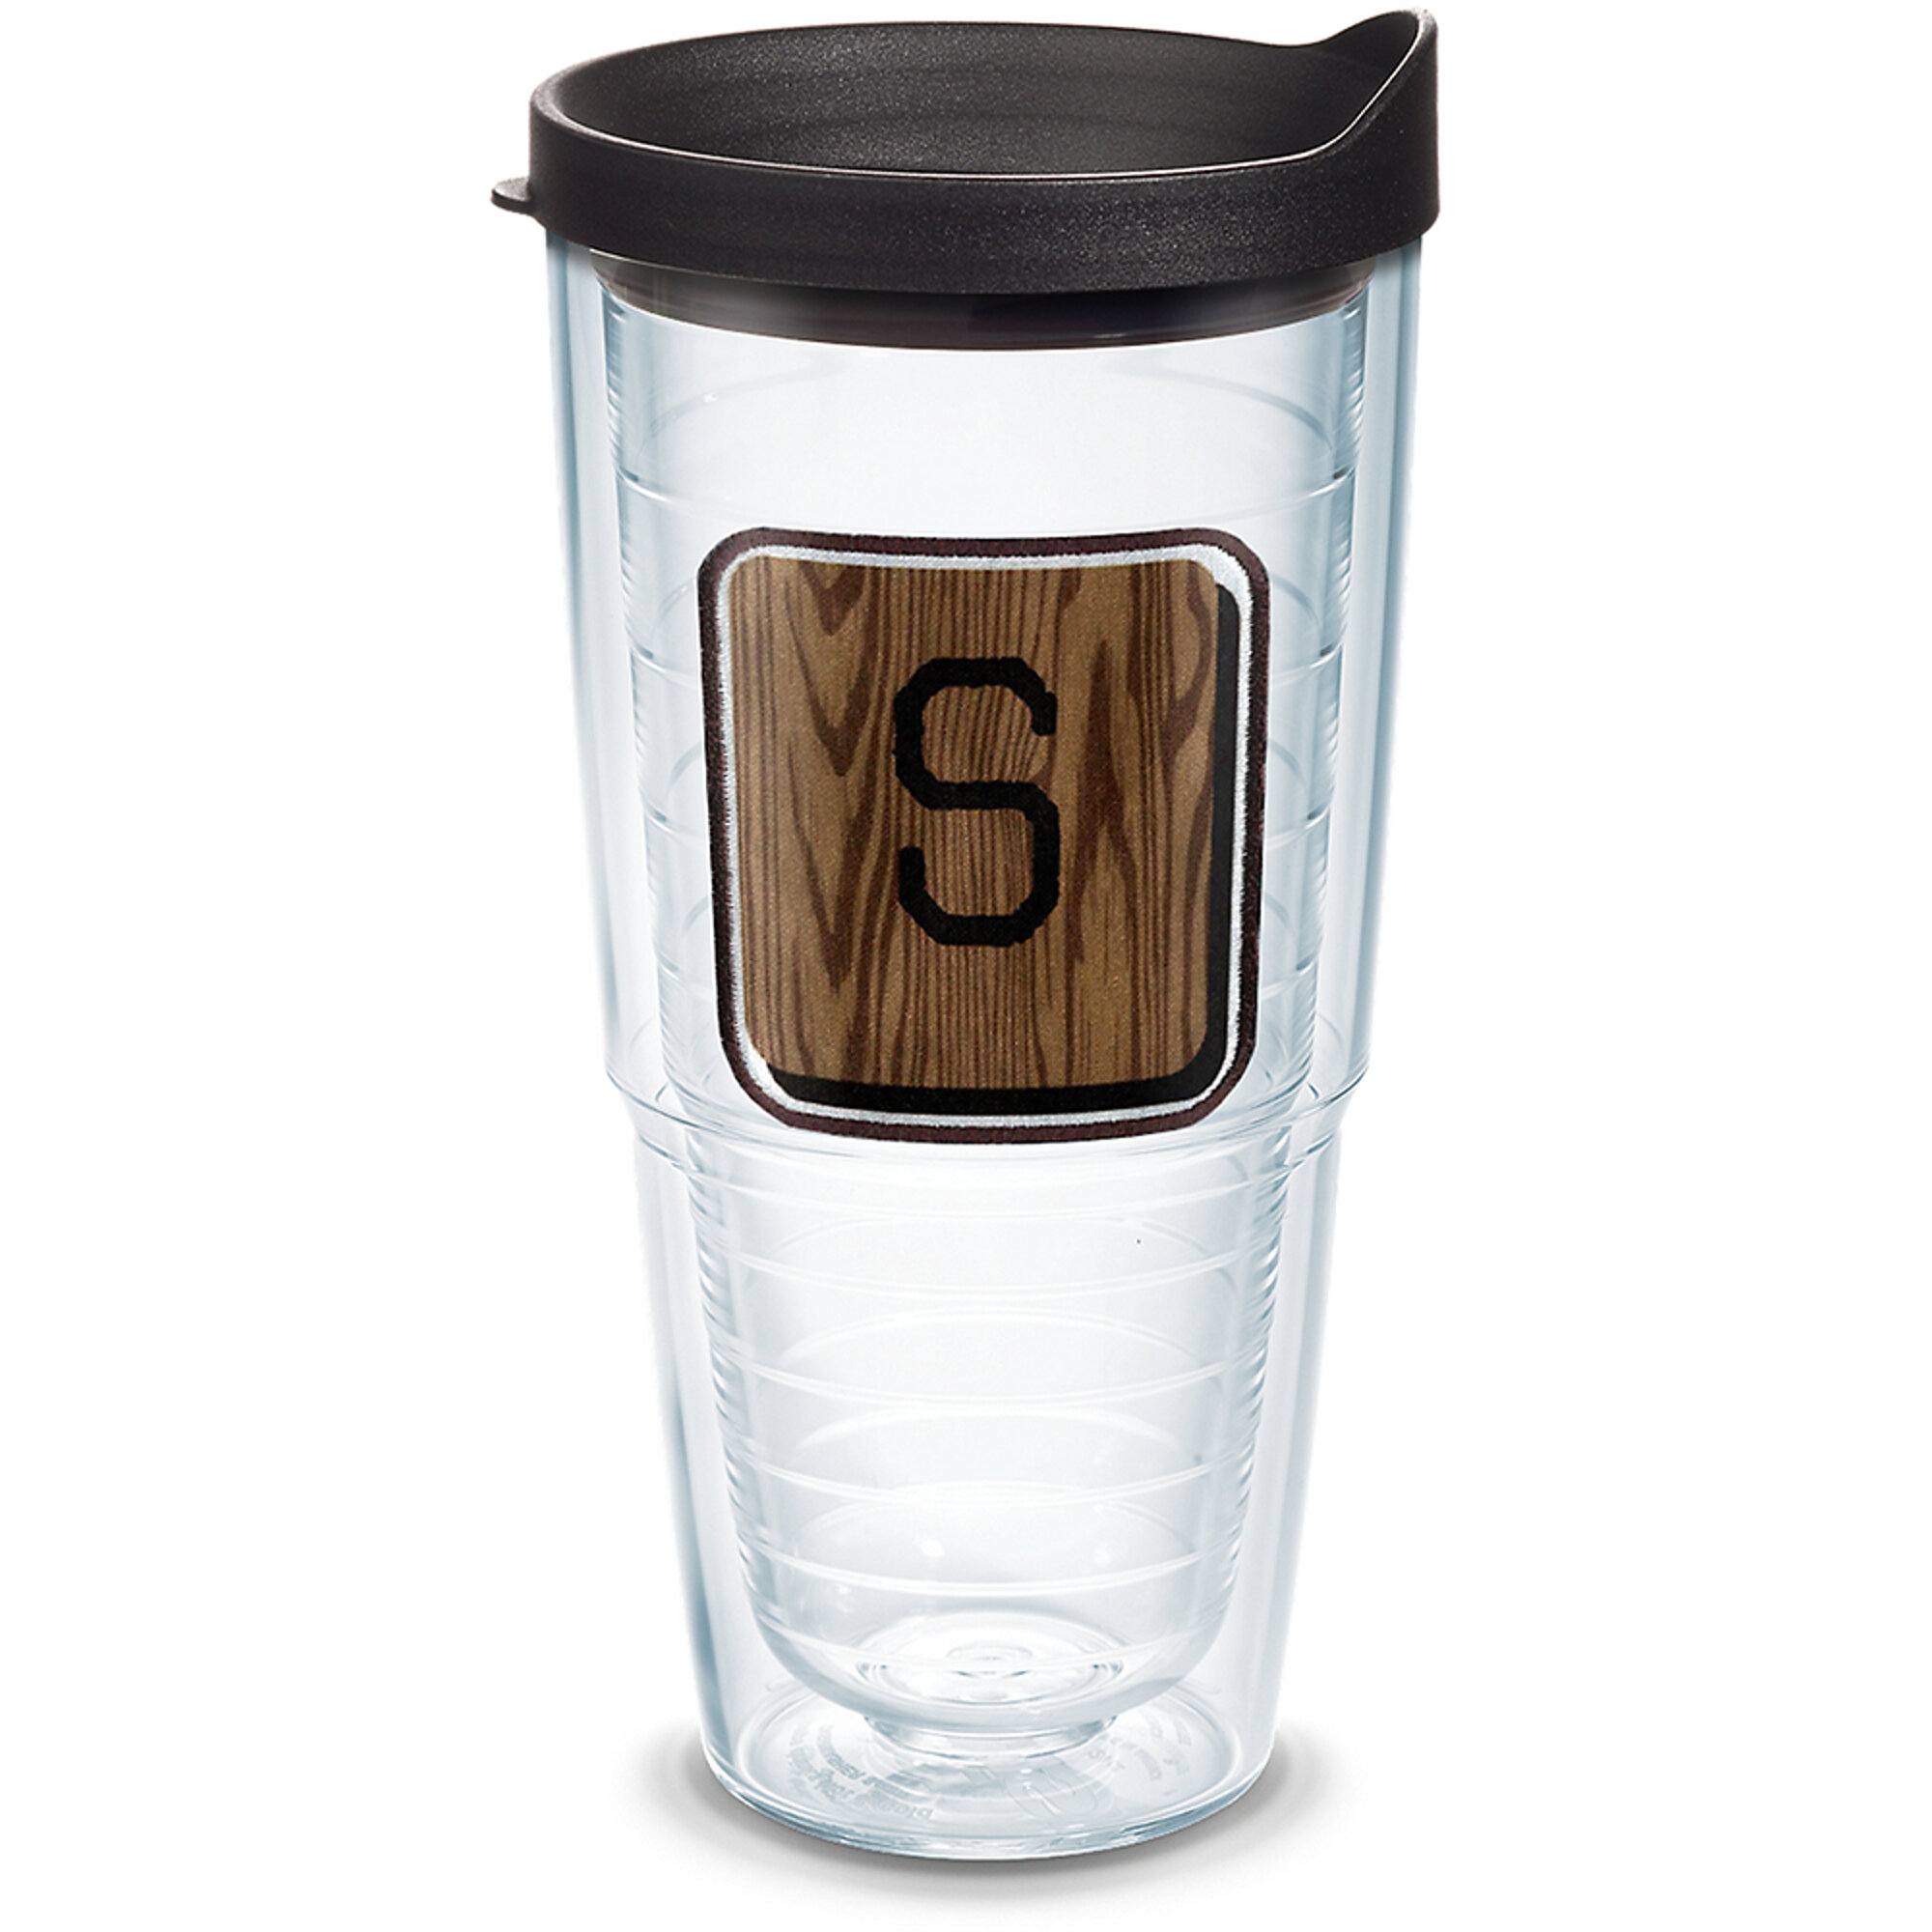 Tervis Tumbler Initial S Wood Tile With Emblem 24 Oz Travel Tumbler Wayfair